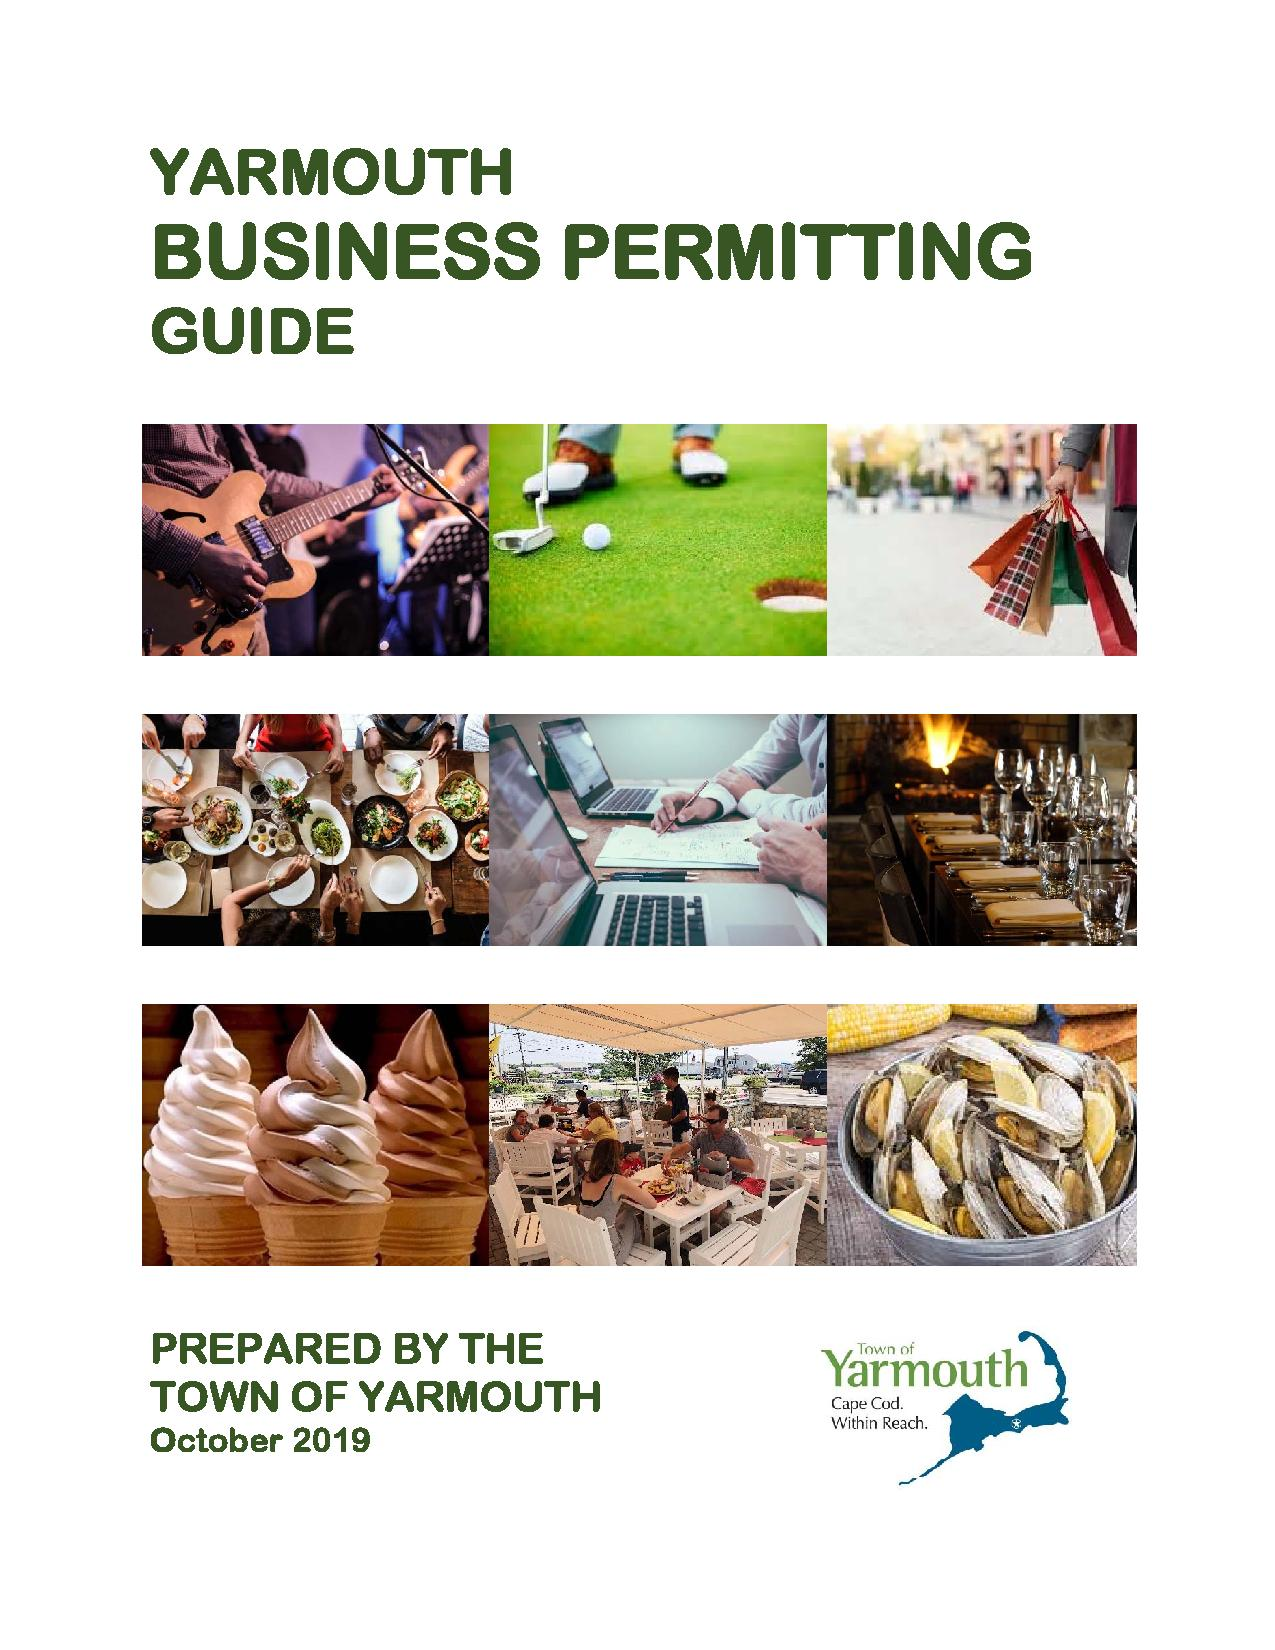 Permitting Guide Pic